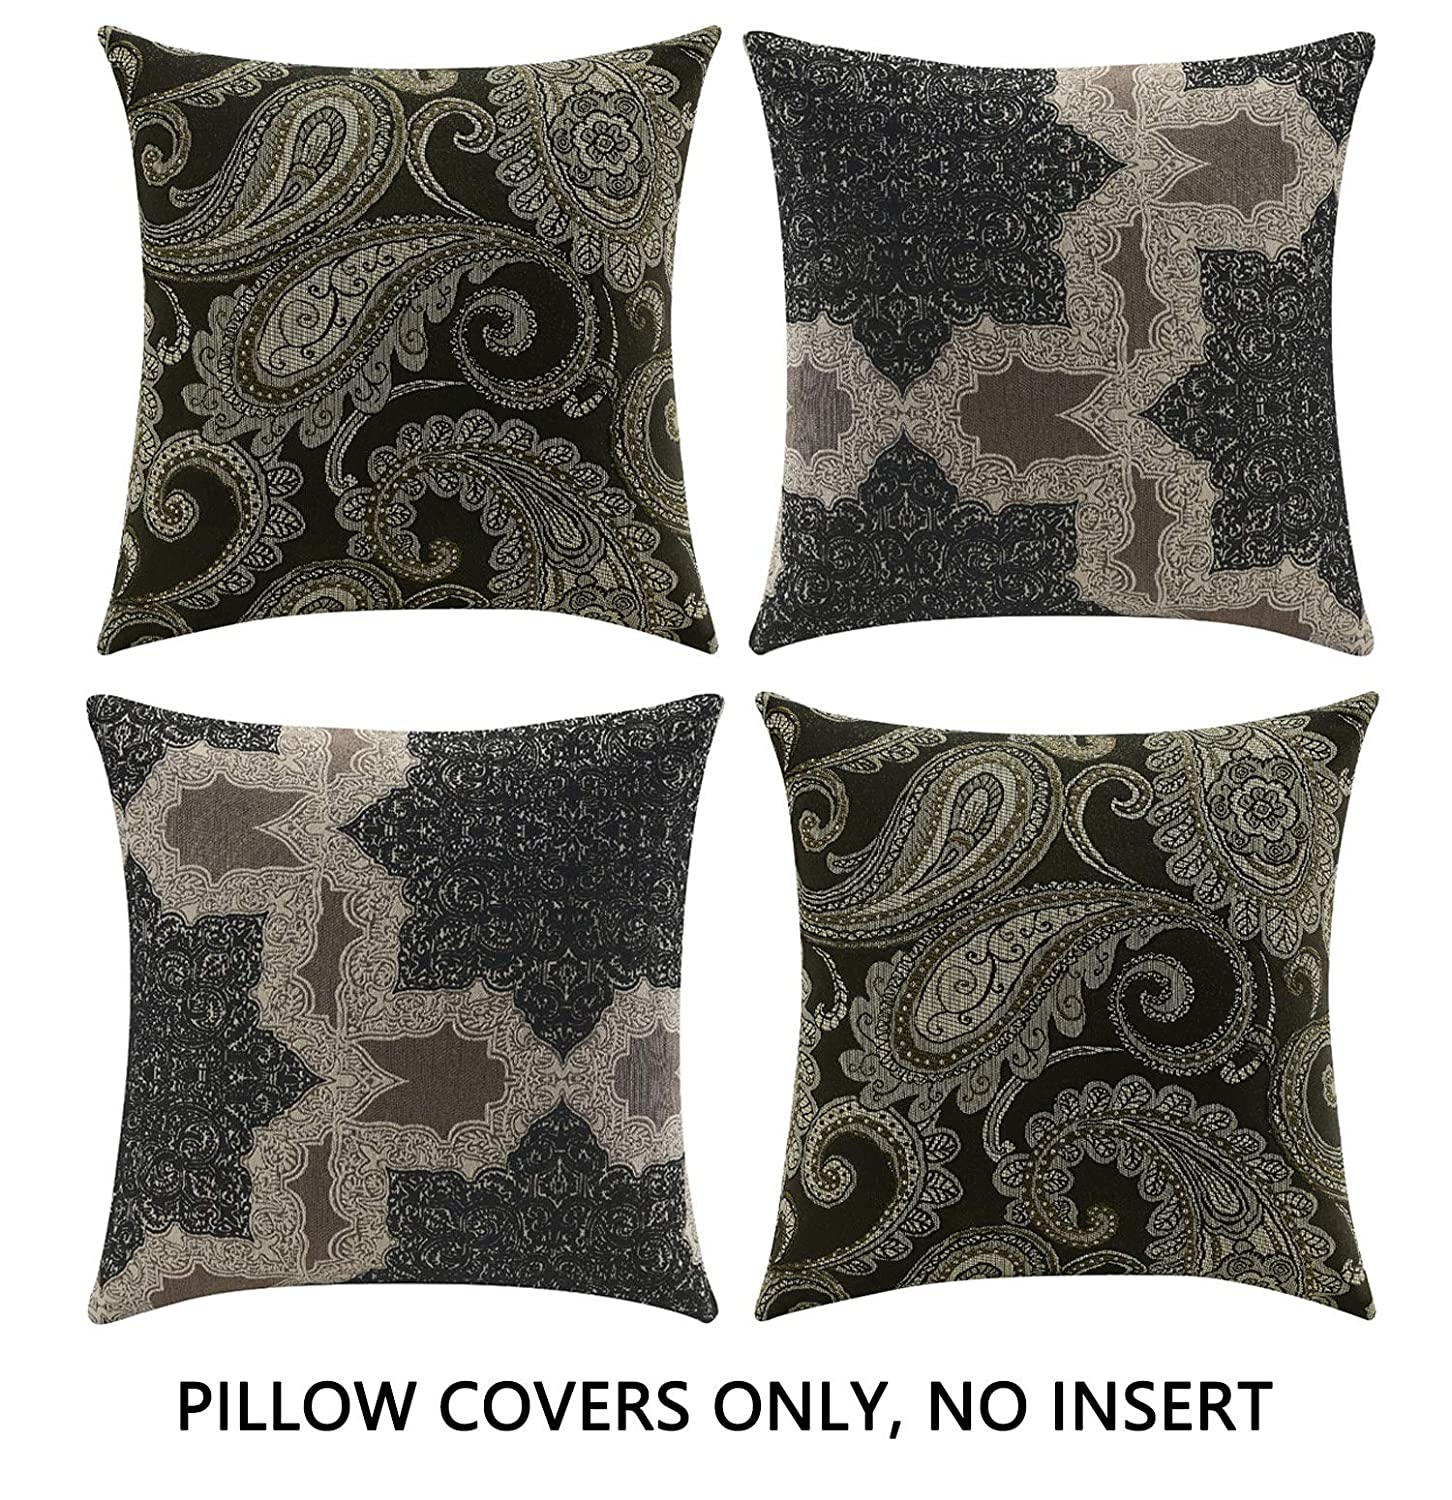 Comfortland Decorative Throw Pillow Covers Vintage Floral Leaves Square Pillow Case Home Decor Cushion Covers for Couch/Sofa/Bedroom/Livingroom 20 x 20 inch Set of 4,Black and Tan